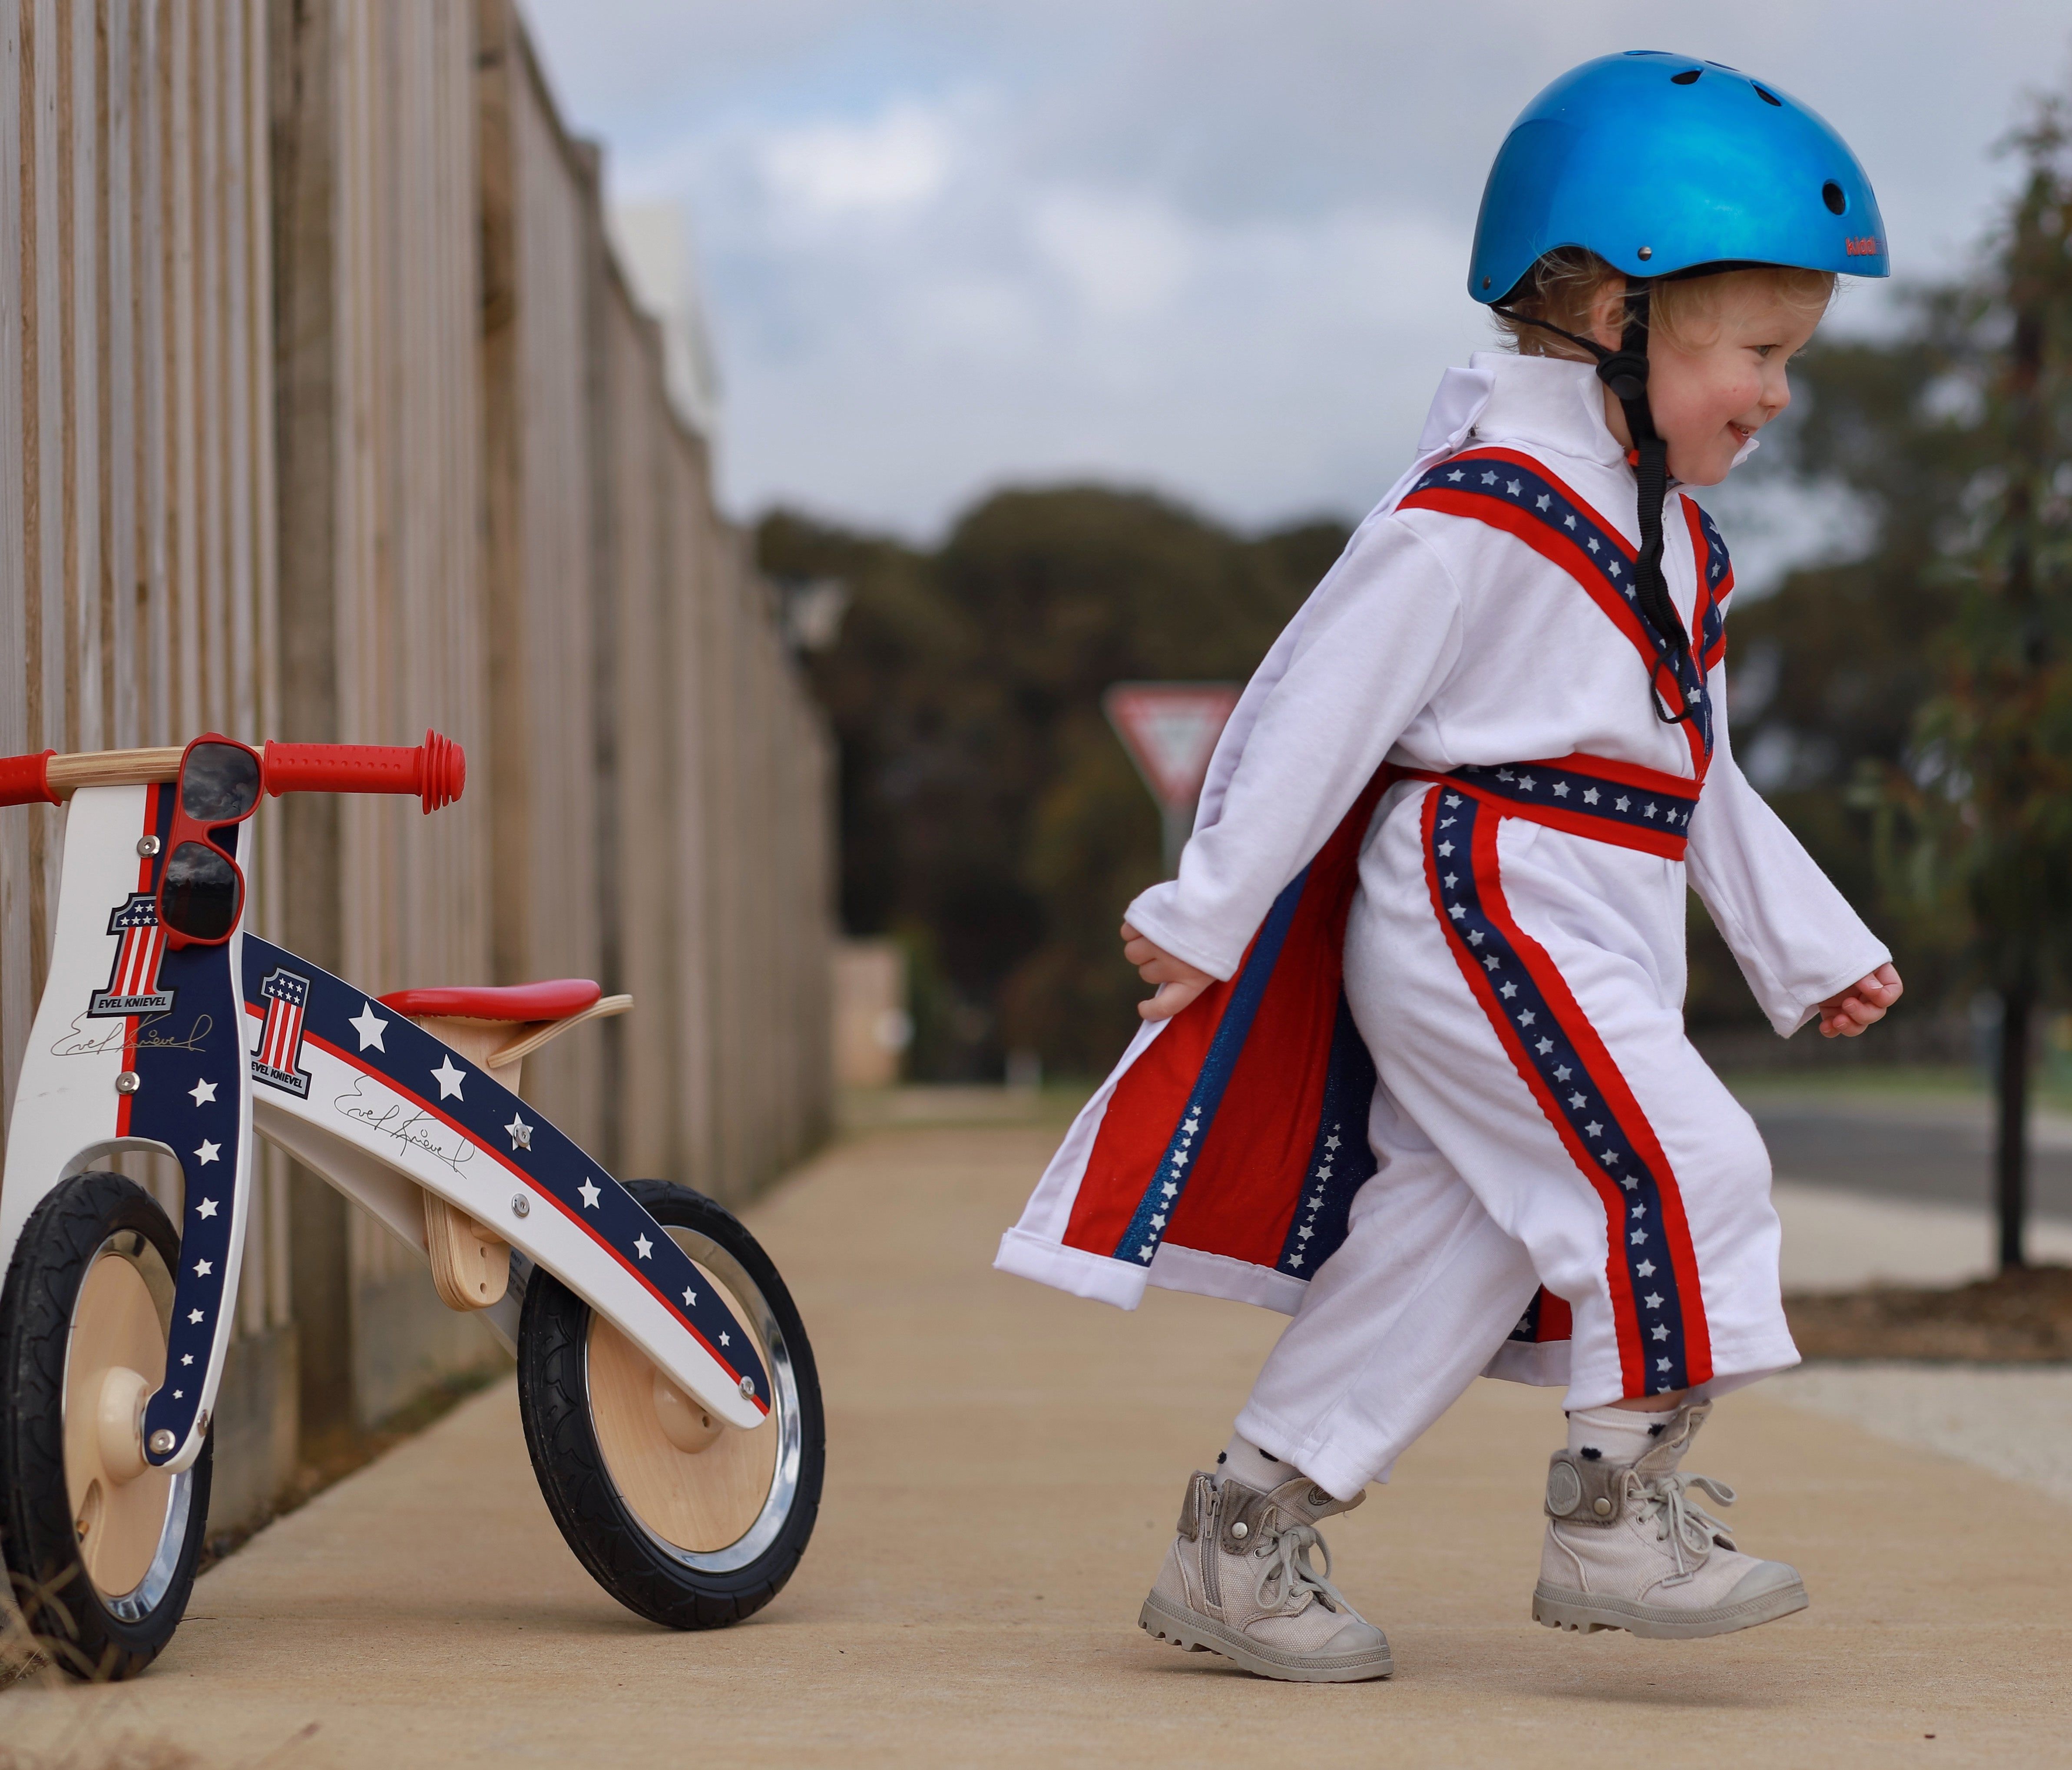 A photo of a boy in our Metallic Ocean Blue helmet walking away from his Evel Knievel Kurve